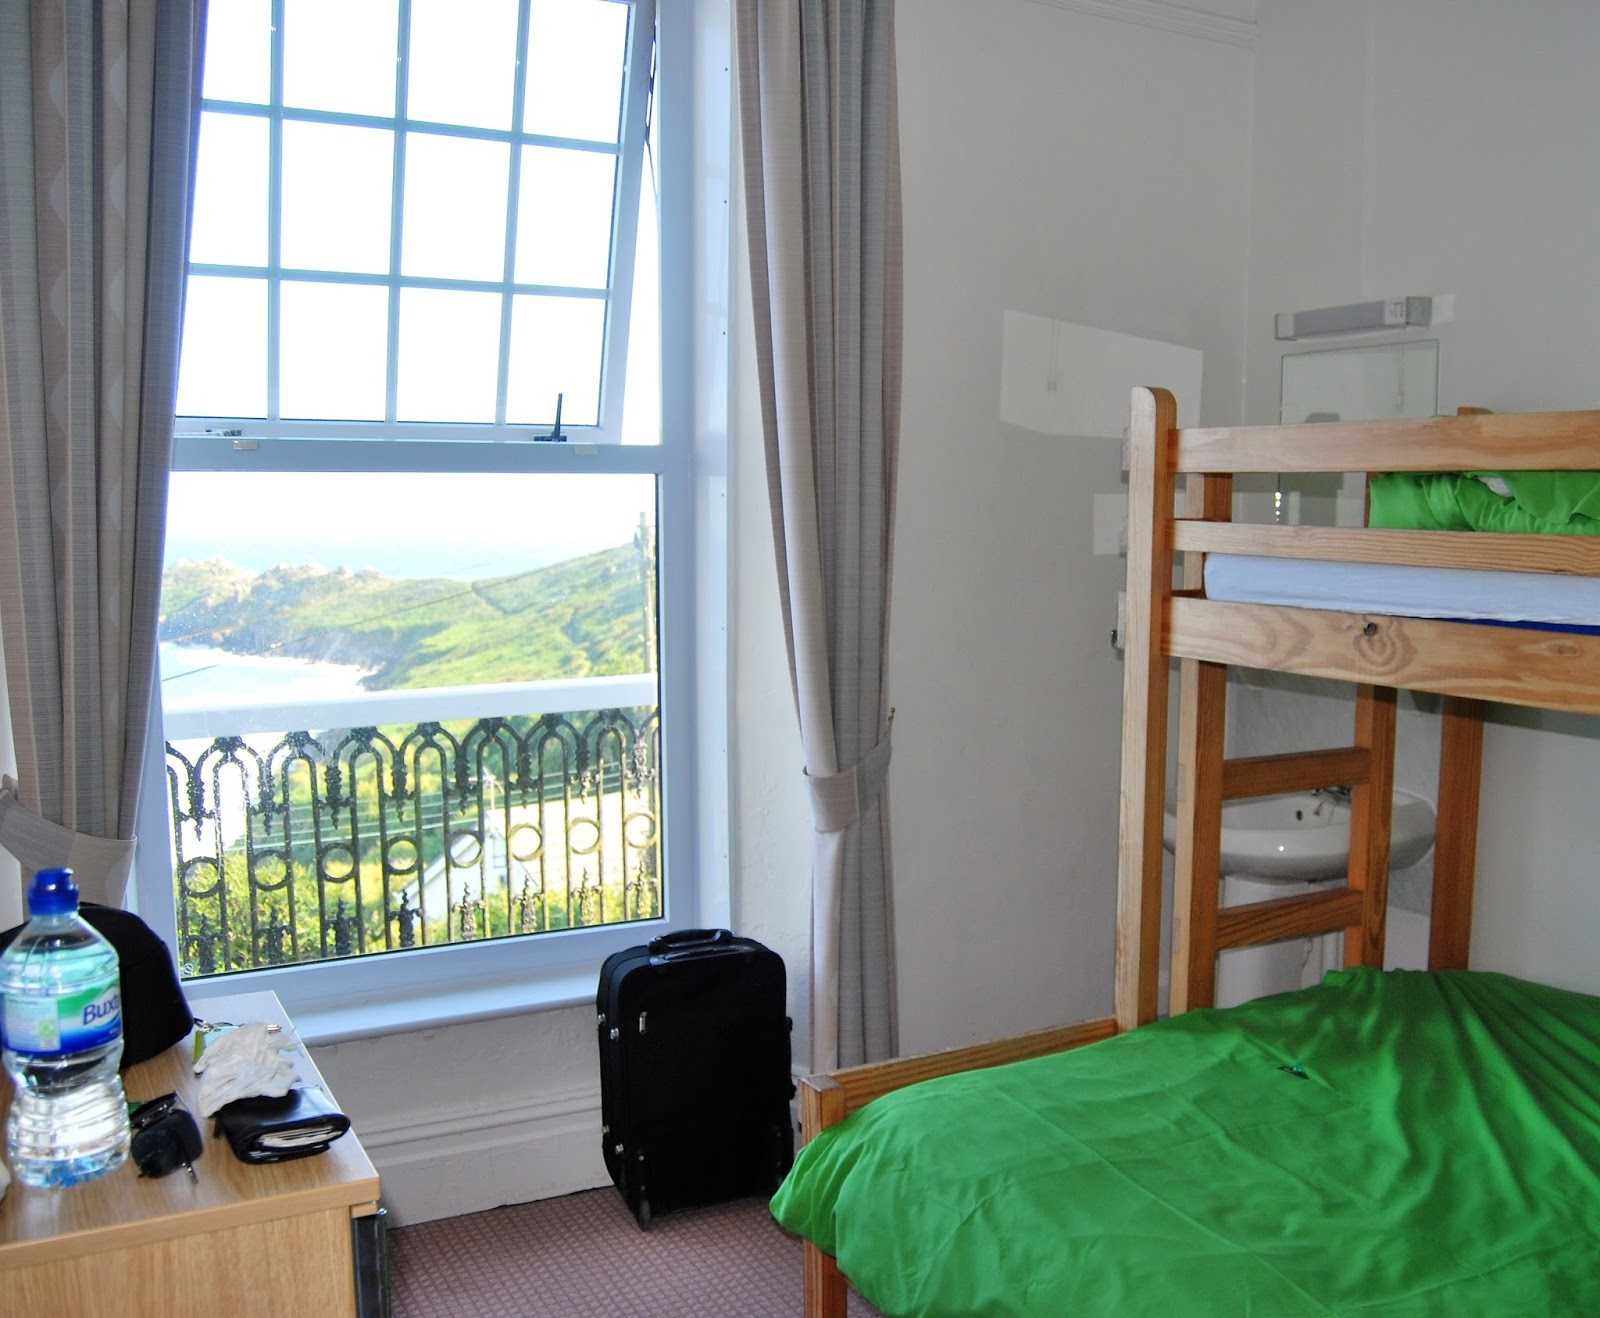 Staying in YHA Coverack, photo by modern bric a brac